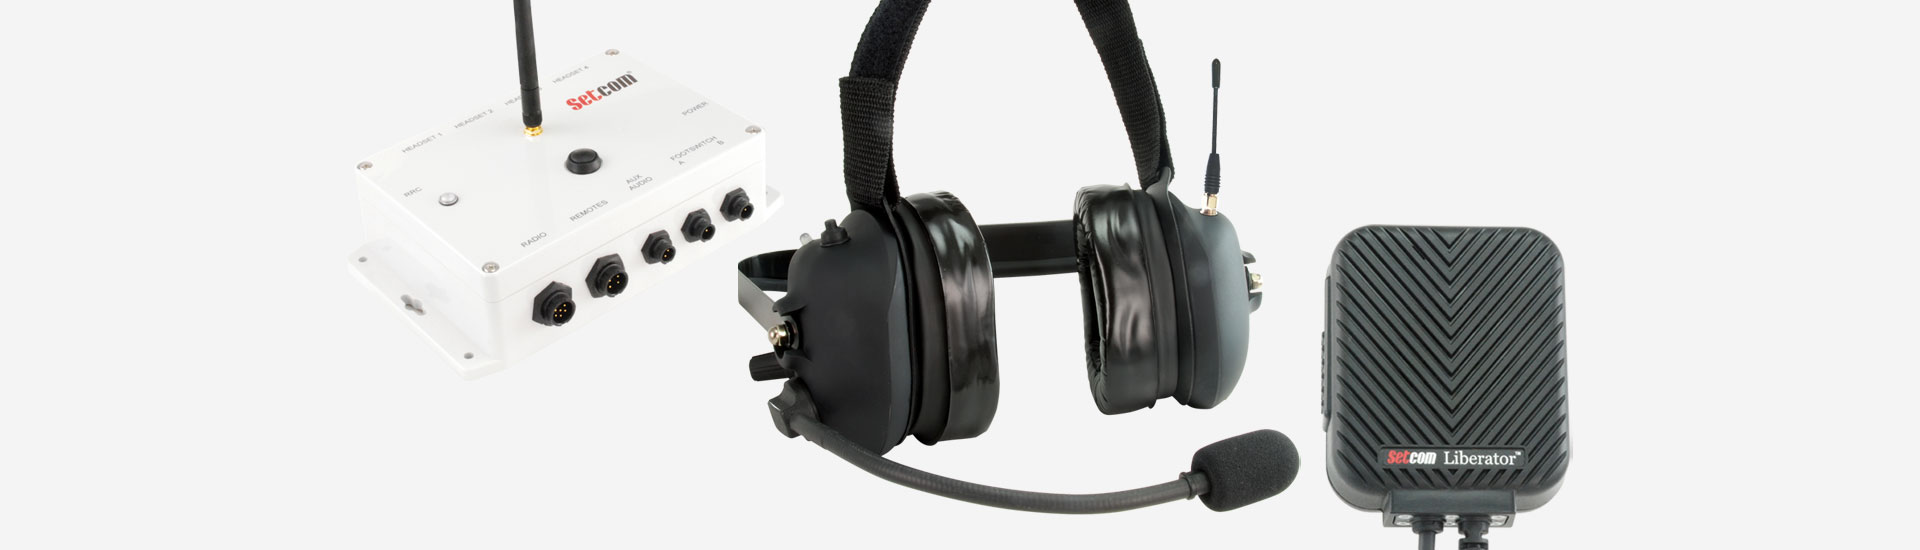 Setcom headsets and intercoms